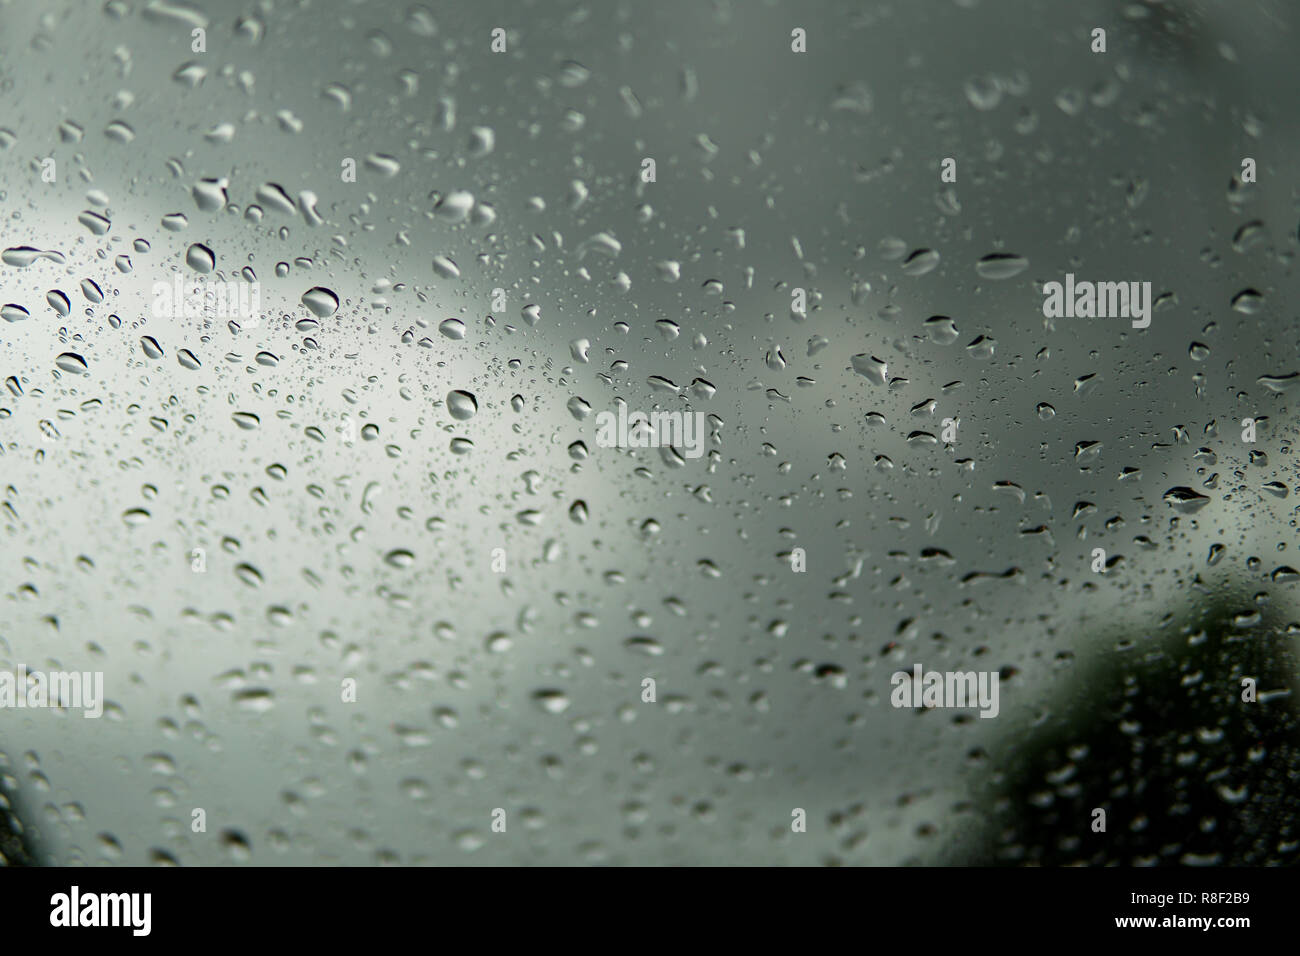 Rain drop on the car glass background.Road view through car window with rain drops, Driving in rain.Abstract traffic in raining day. View from car sea - Stock Image